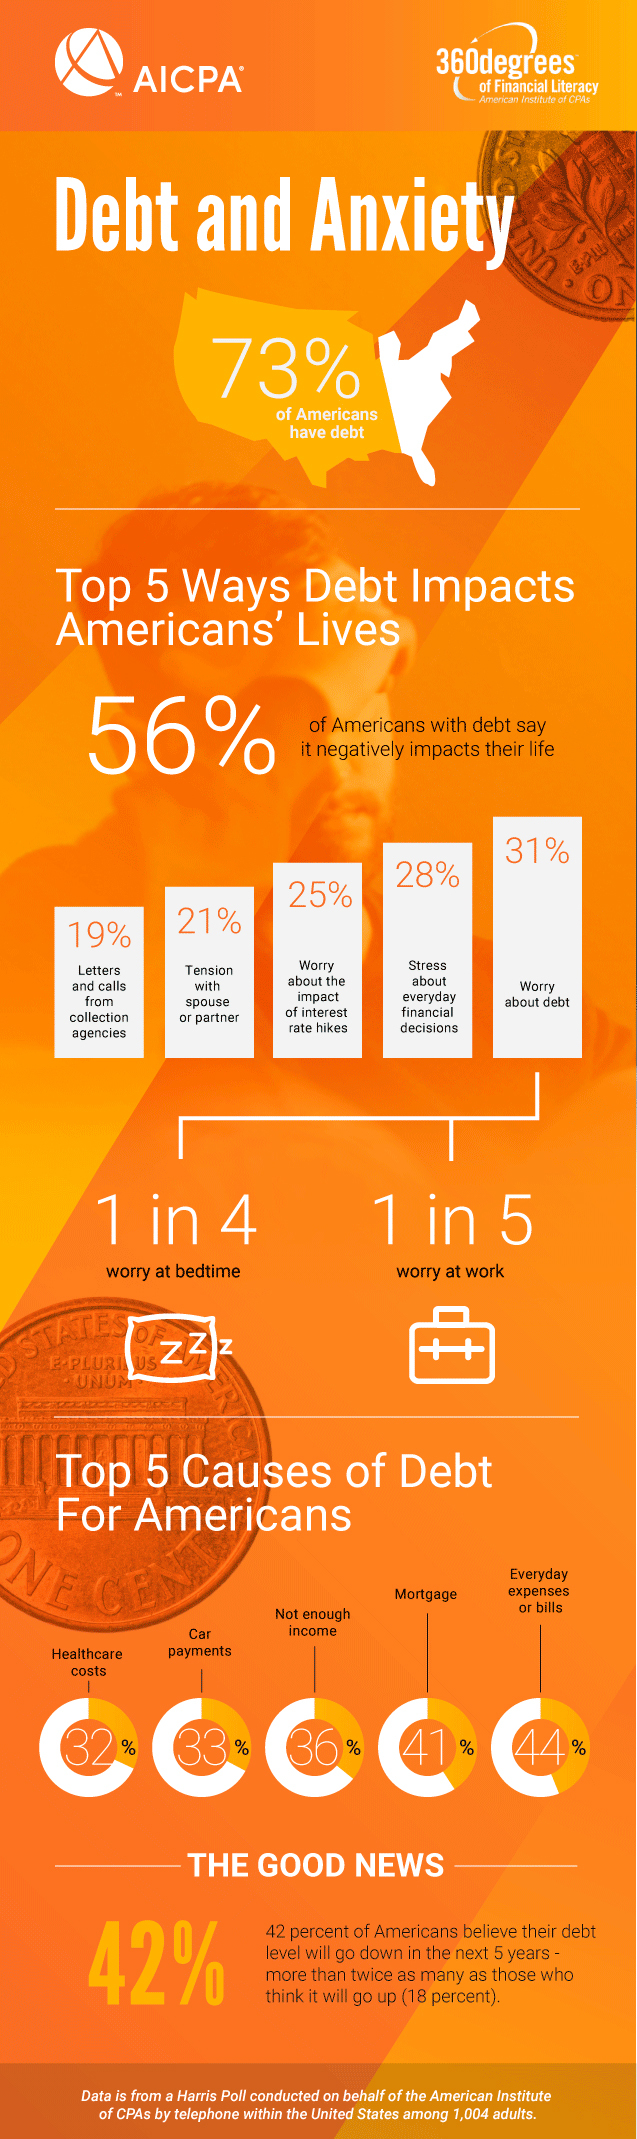 Infographic_Debt_and_Anxiety_AICPA